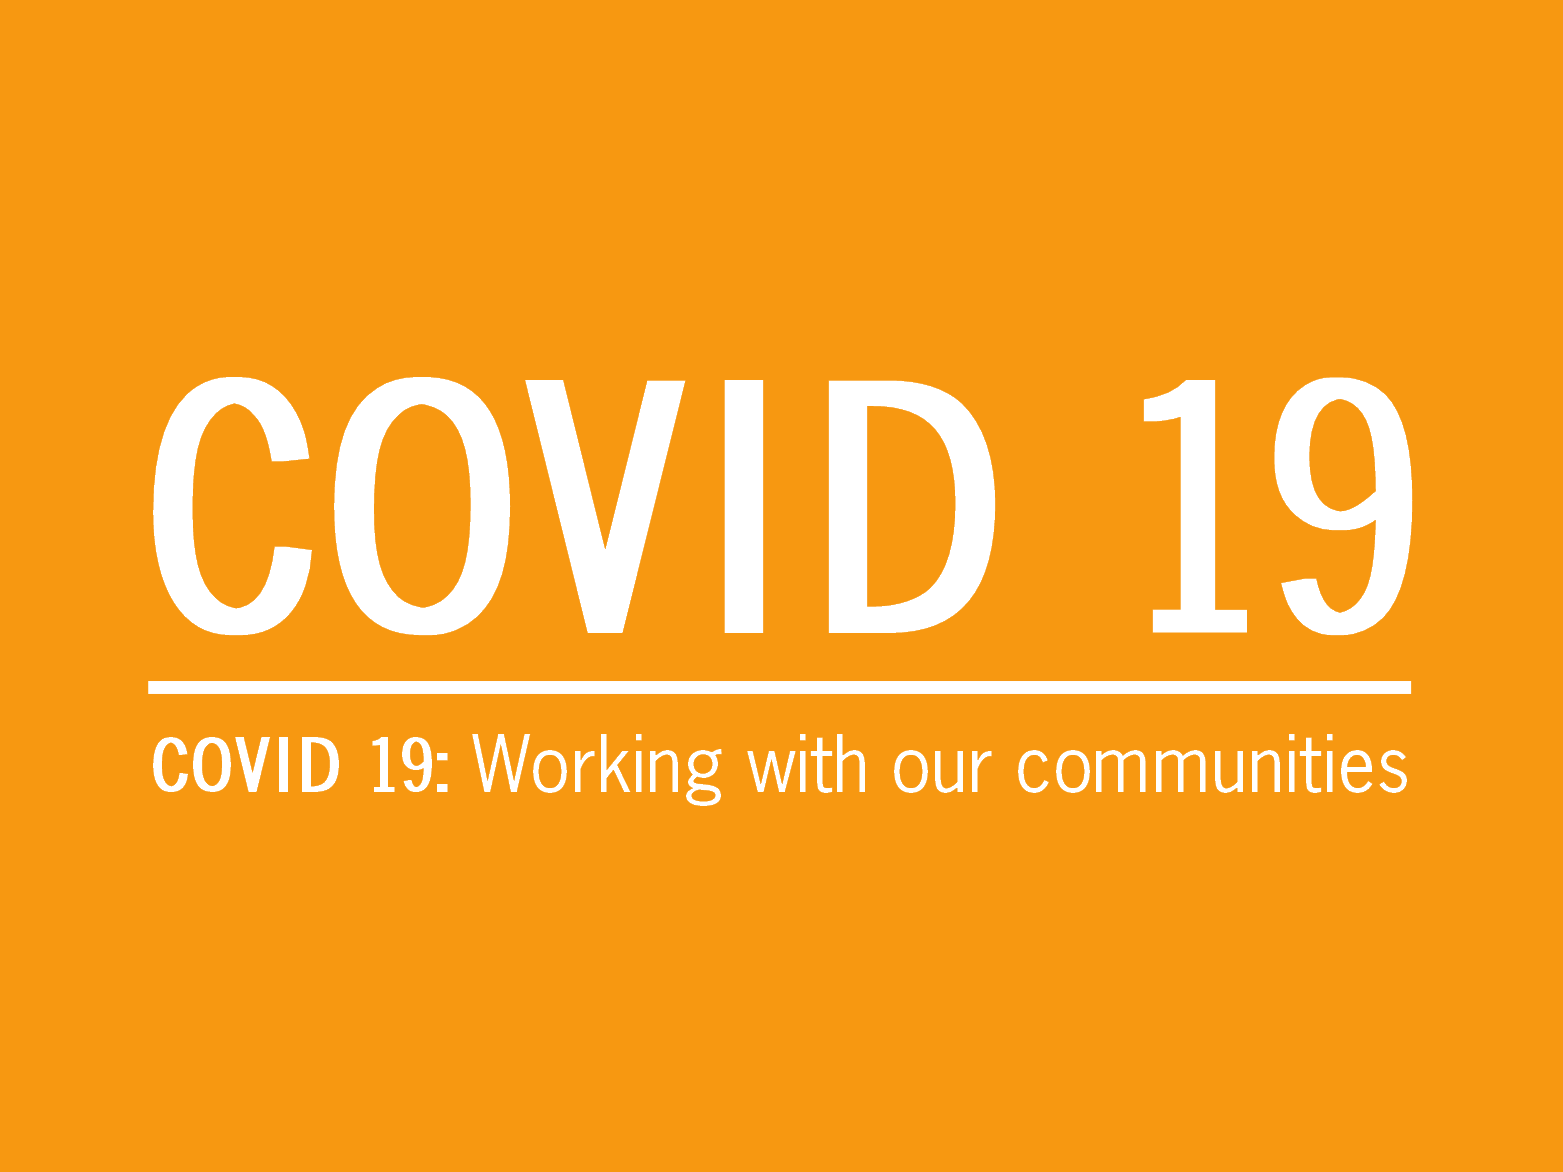 March 25: Working with our communities during Coronavirus